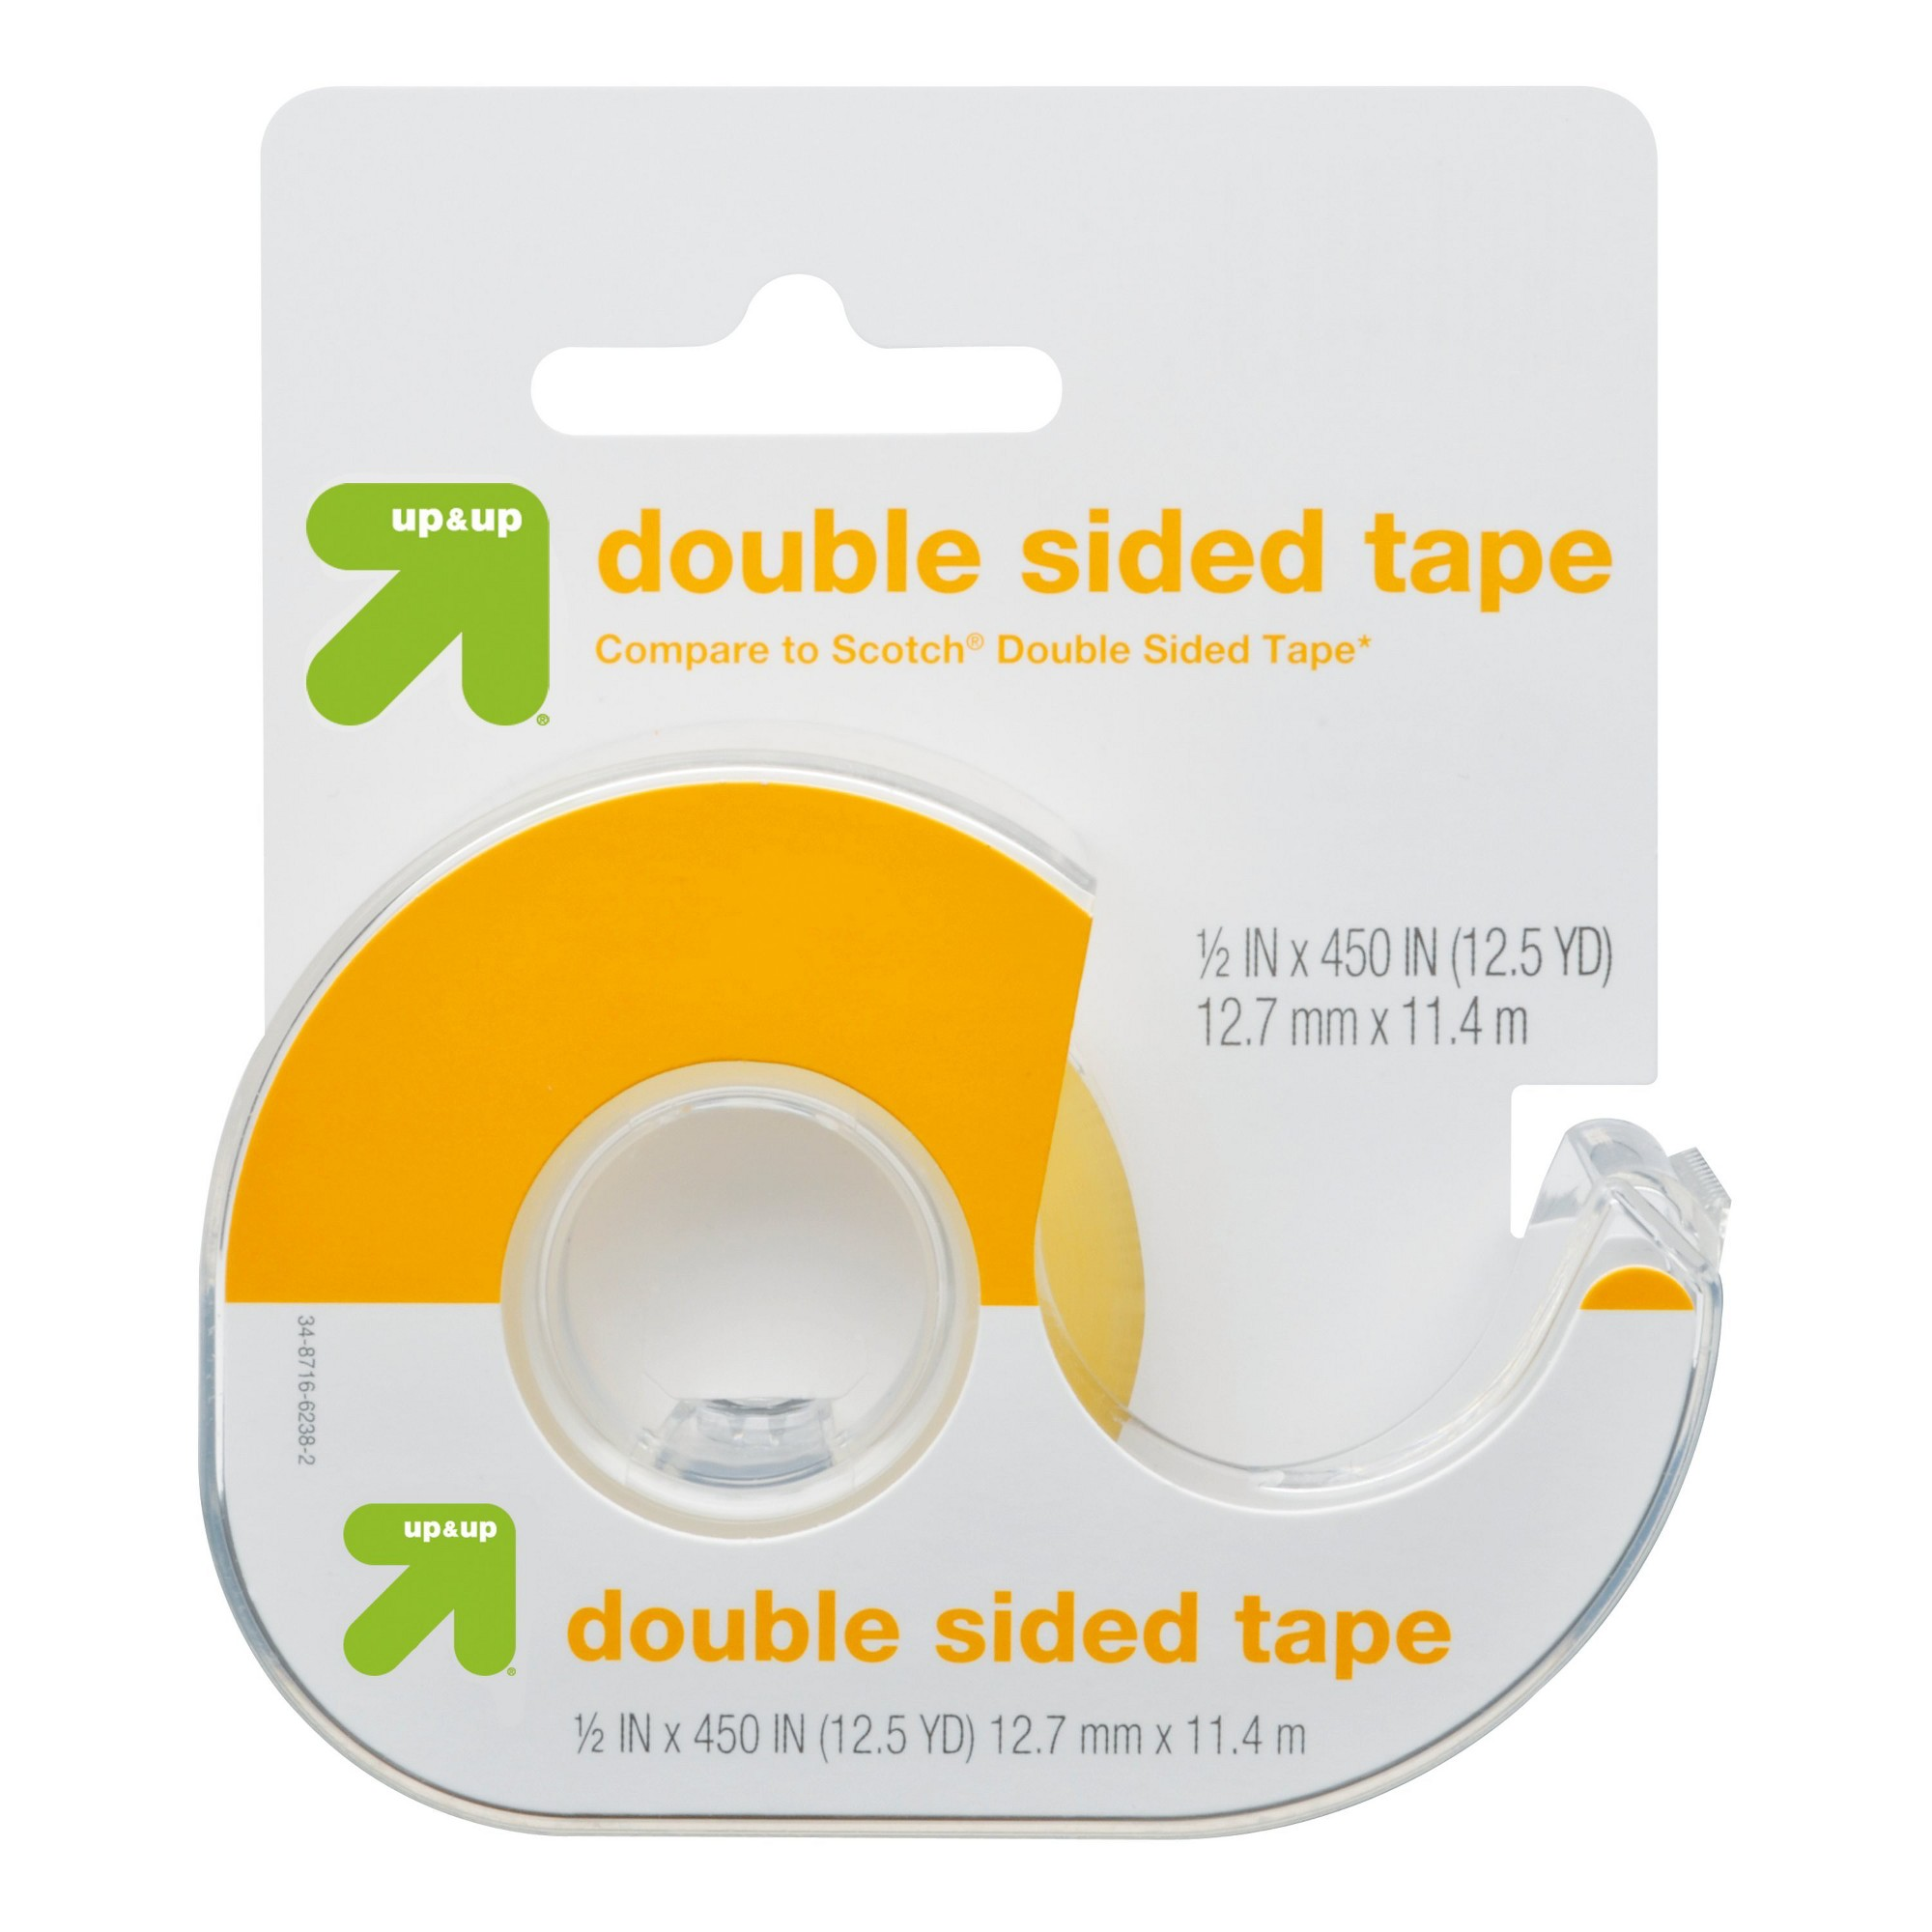 Double-Sided Tape (Compare to Scotch Double Sided Tape) - Up&Up , Clear